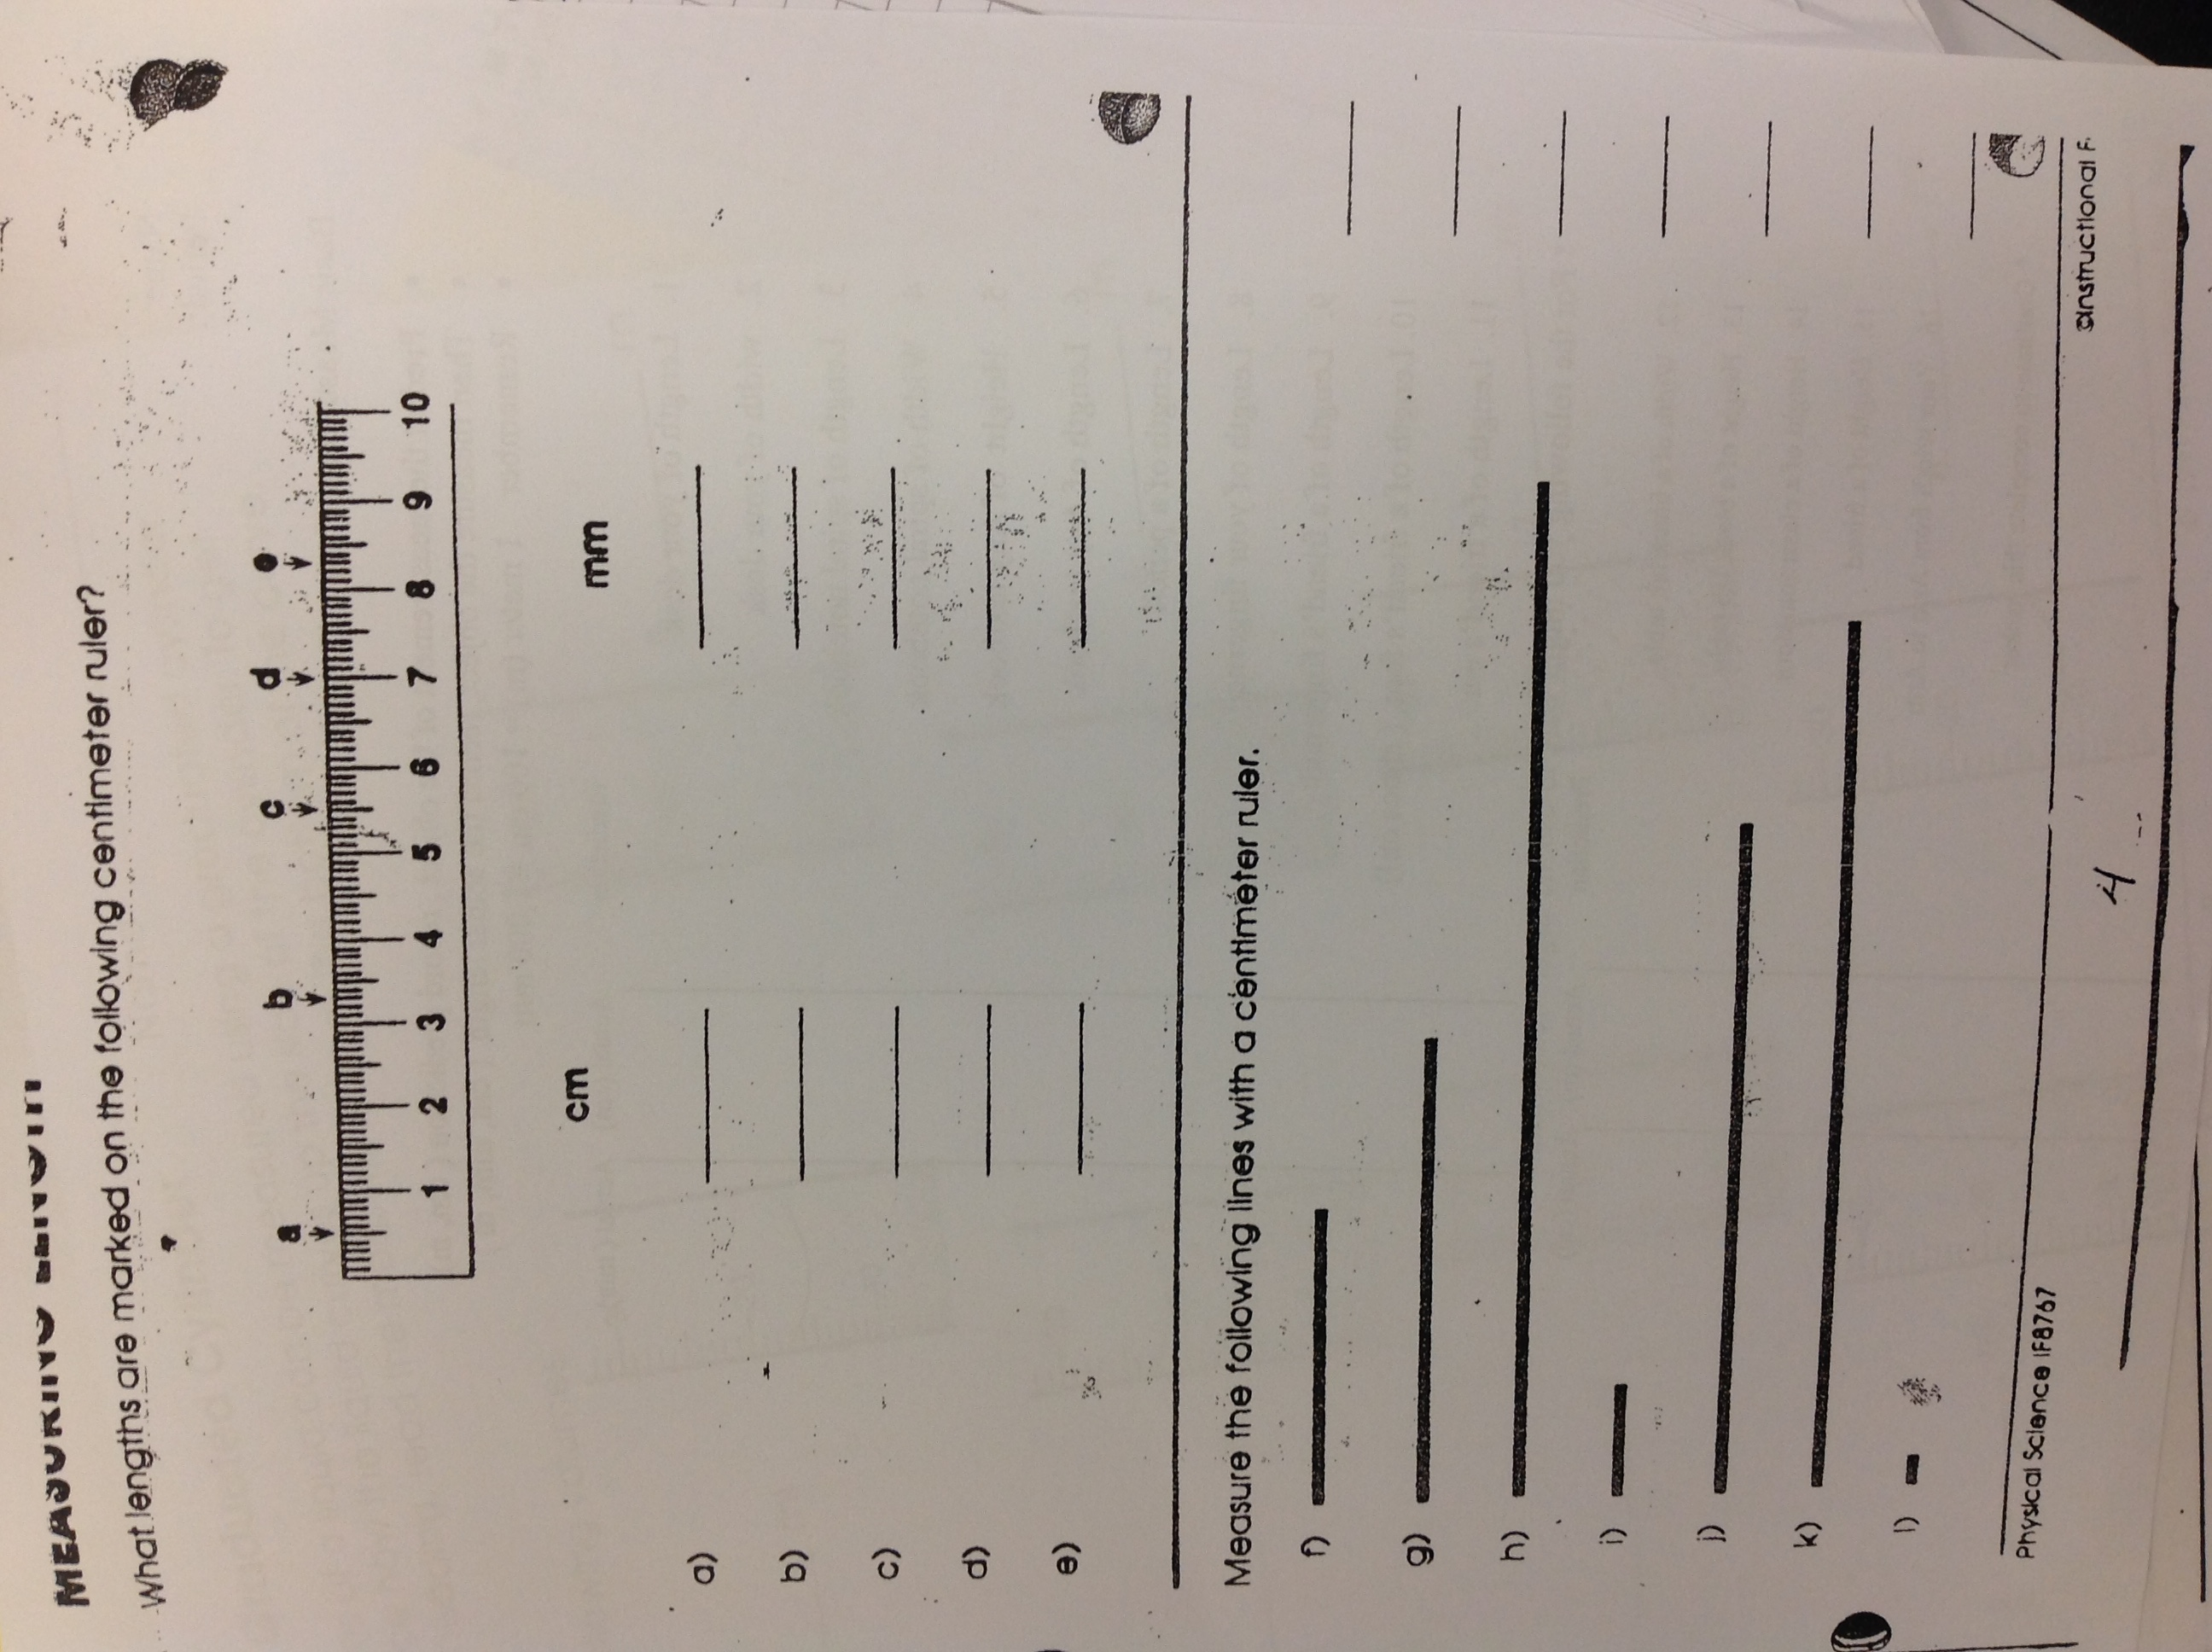 Lab Safety Scientific Method Metric System